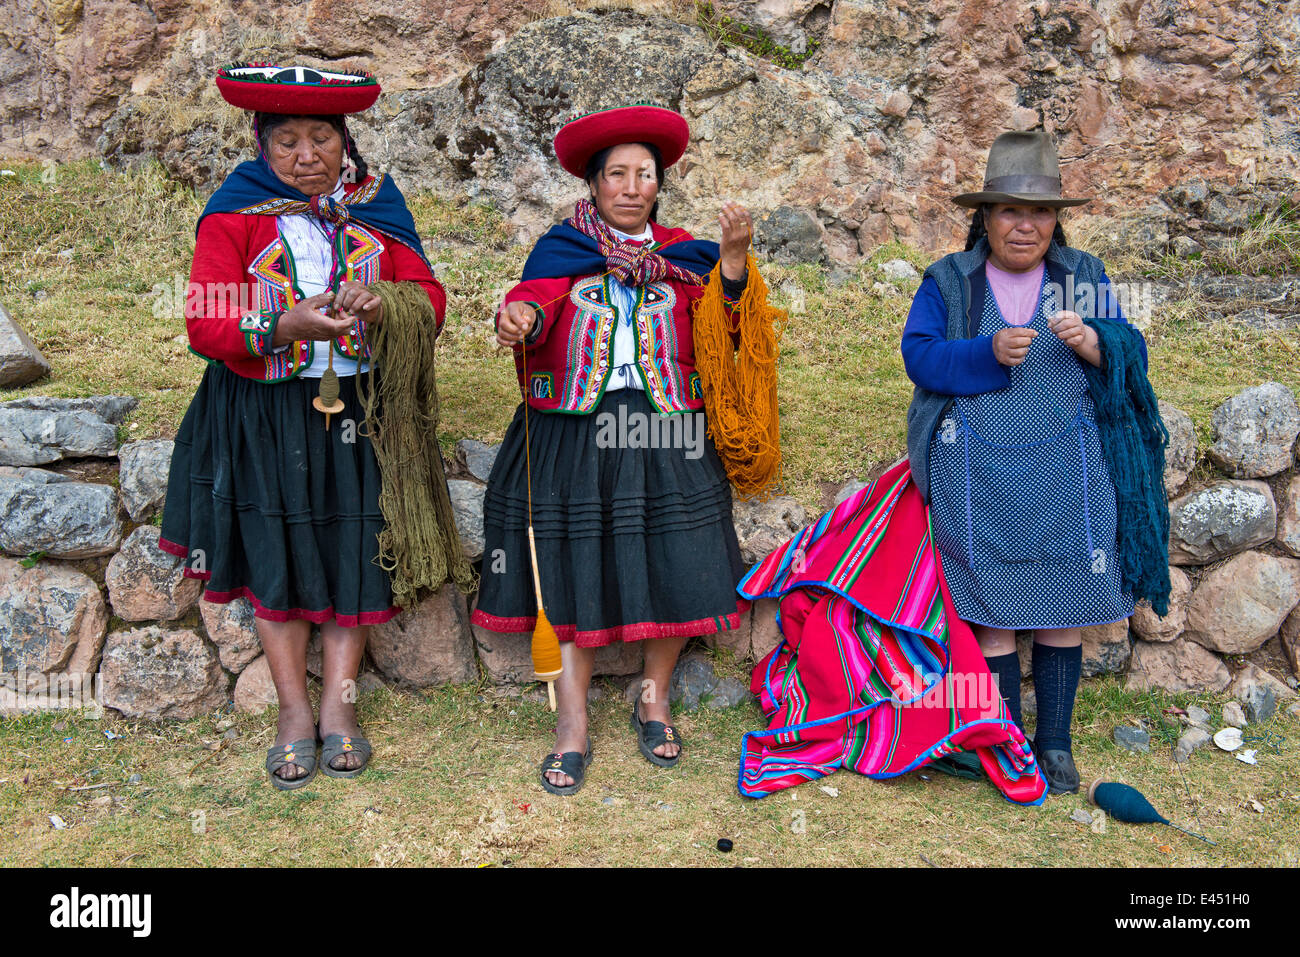 Three elderly women wearing hats, Quechua Indians in traditional dress spinning wool with wooden spindles, Cinchero - Stock Image